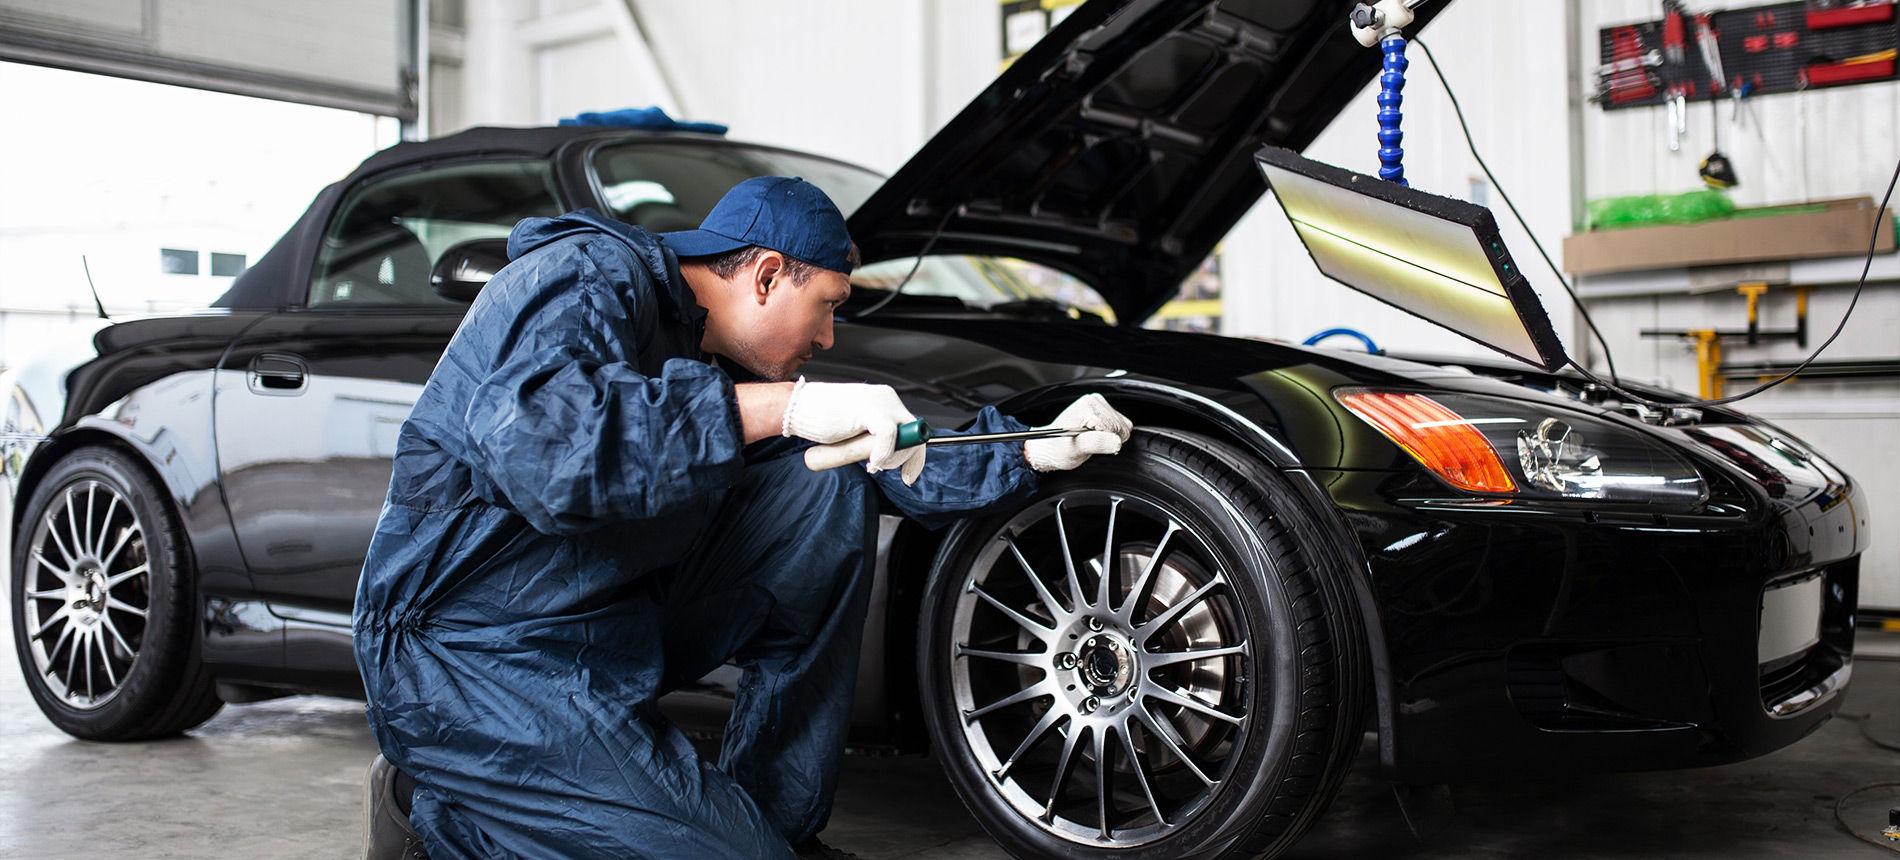 Why Should You Take Your Car to a Professional Auto Body Shop?